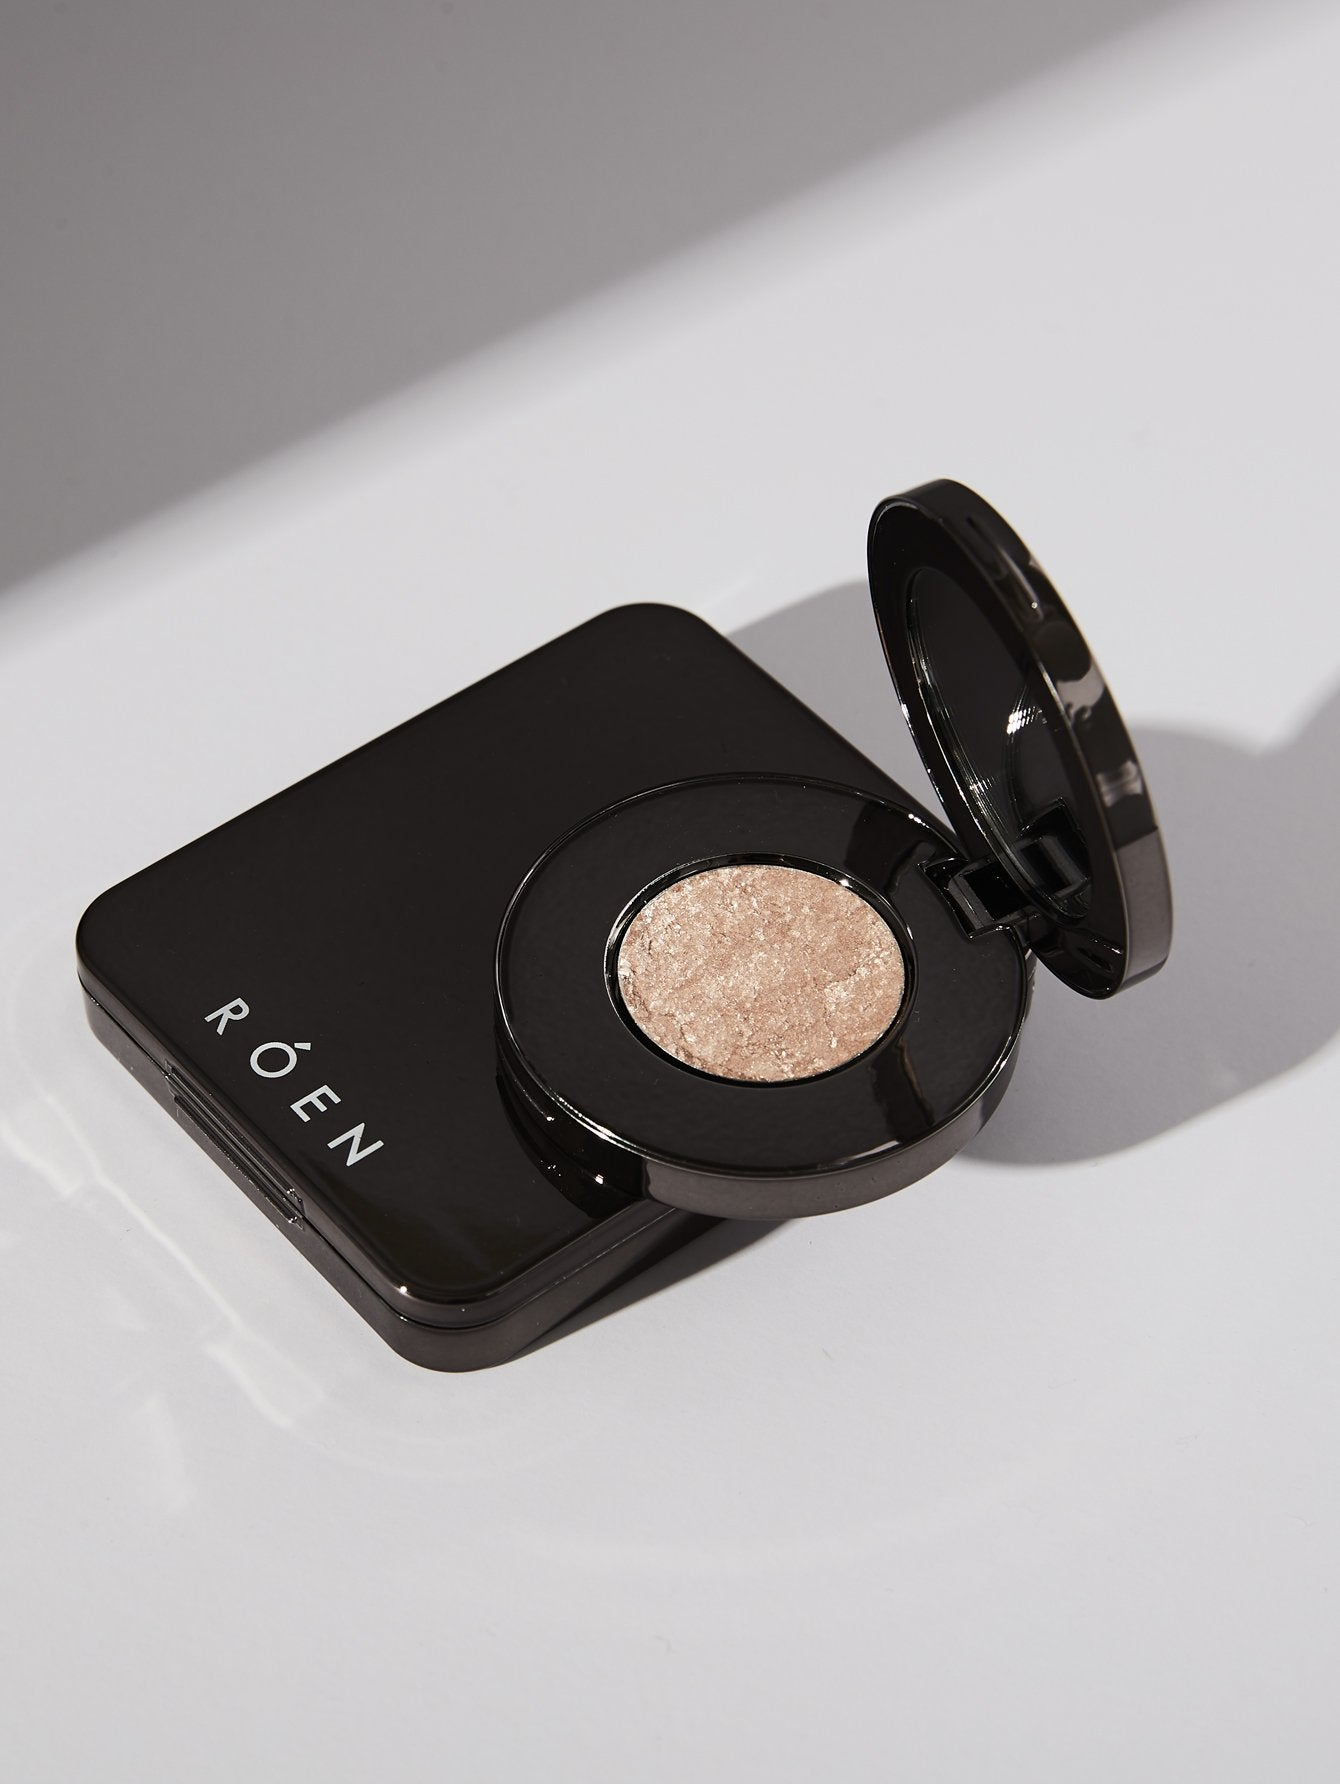 ROEN BEAUTY Makeup - Try our Disco Eye Shadow, this universal shade was made to offer the most unique and insane sparkle.